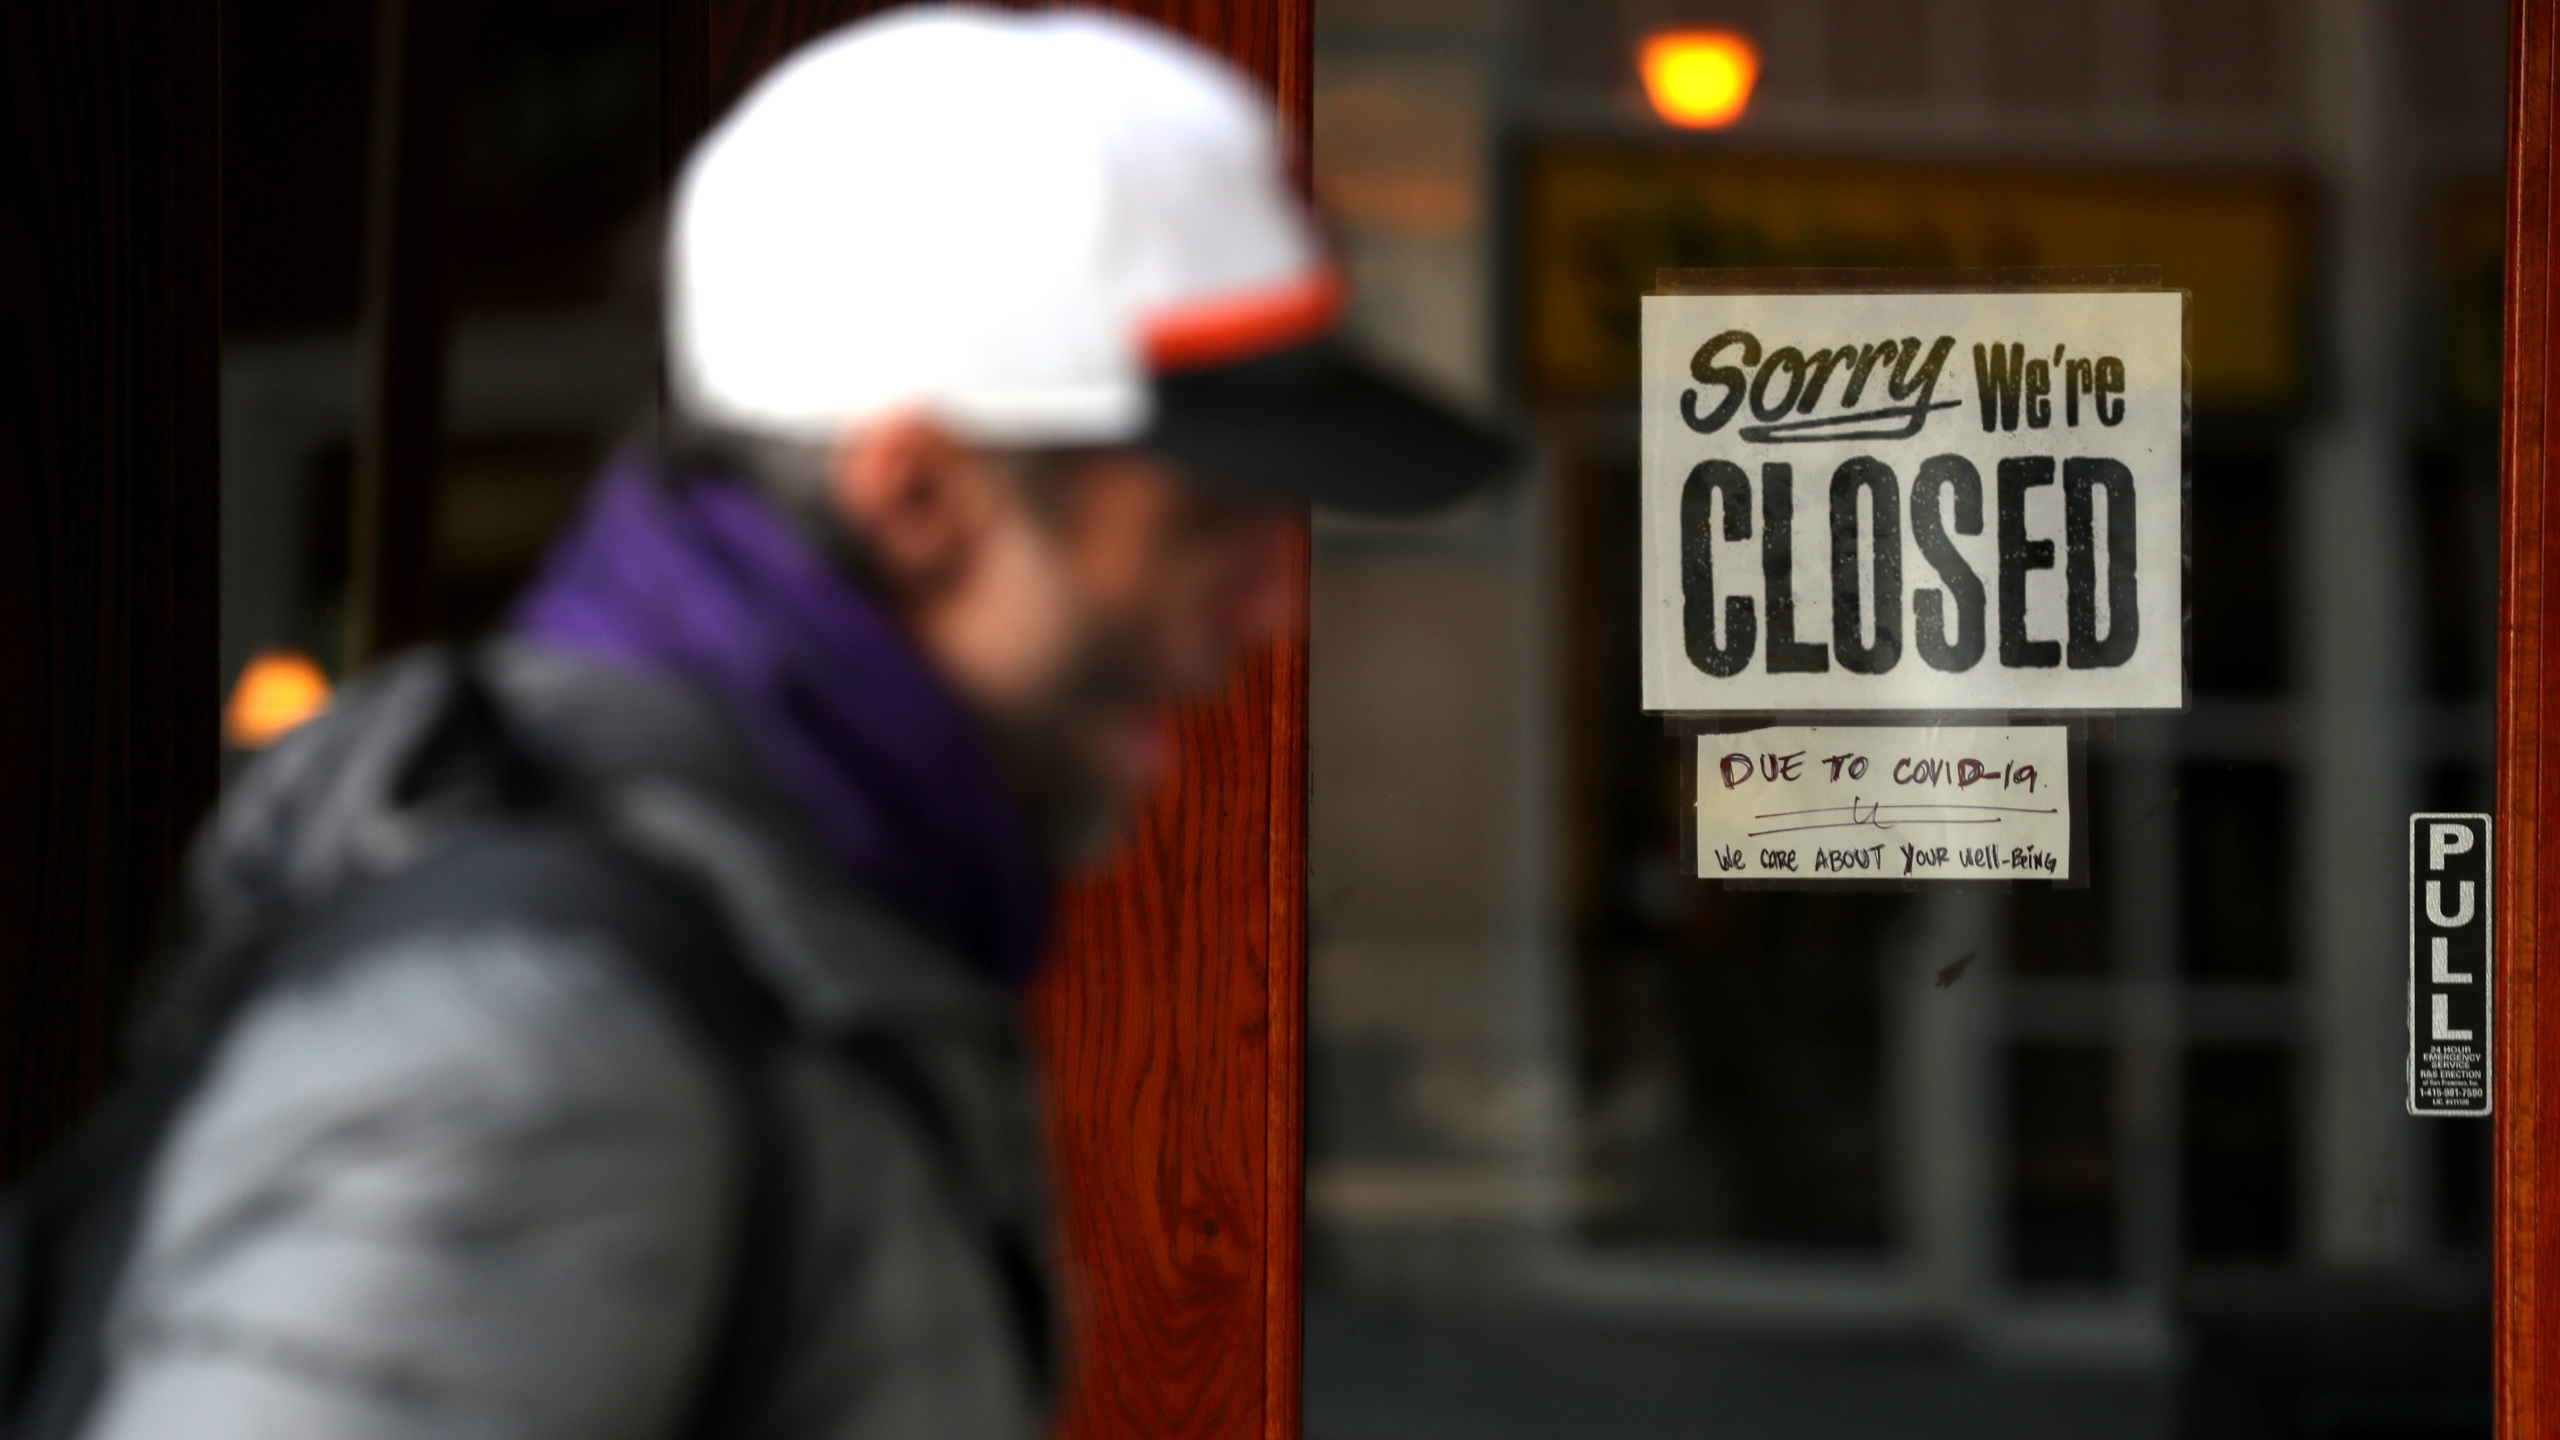 A pedestrian walks by a closed sign on the door of a restaurant in San Francisco on March 17, 2020. (Justin Sullivan / Getty Images)